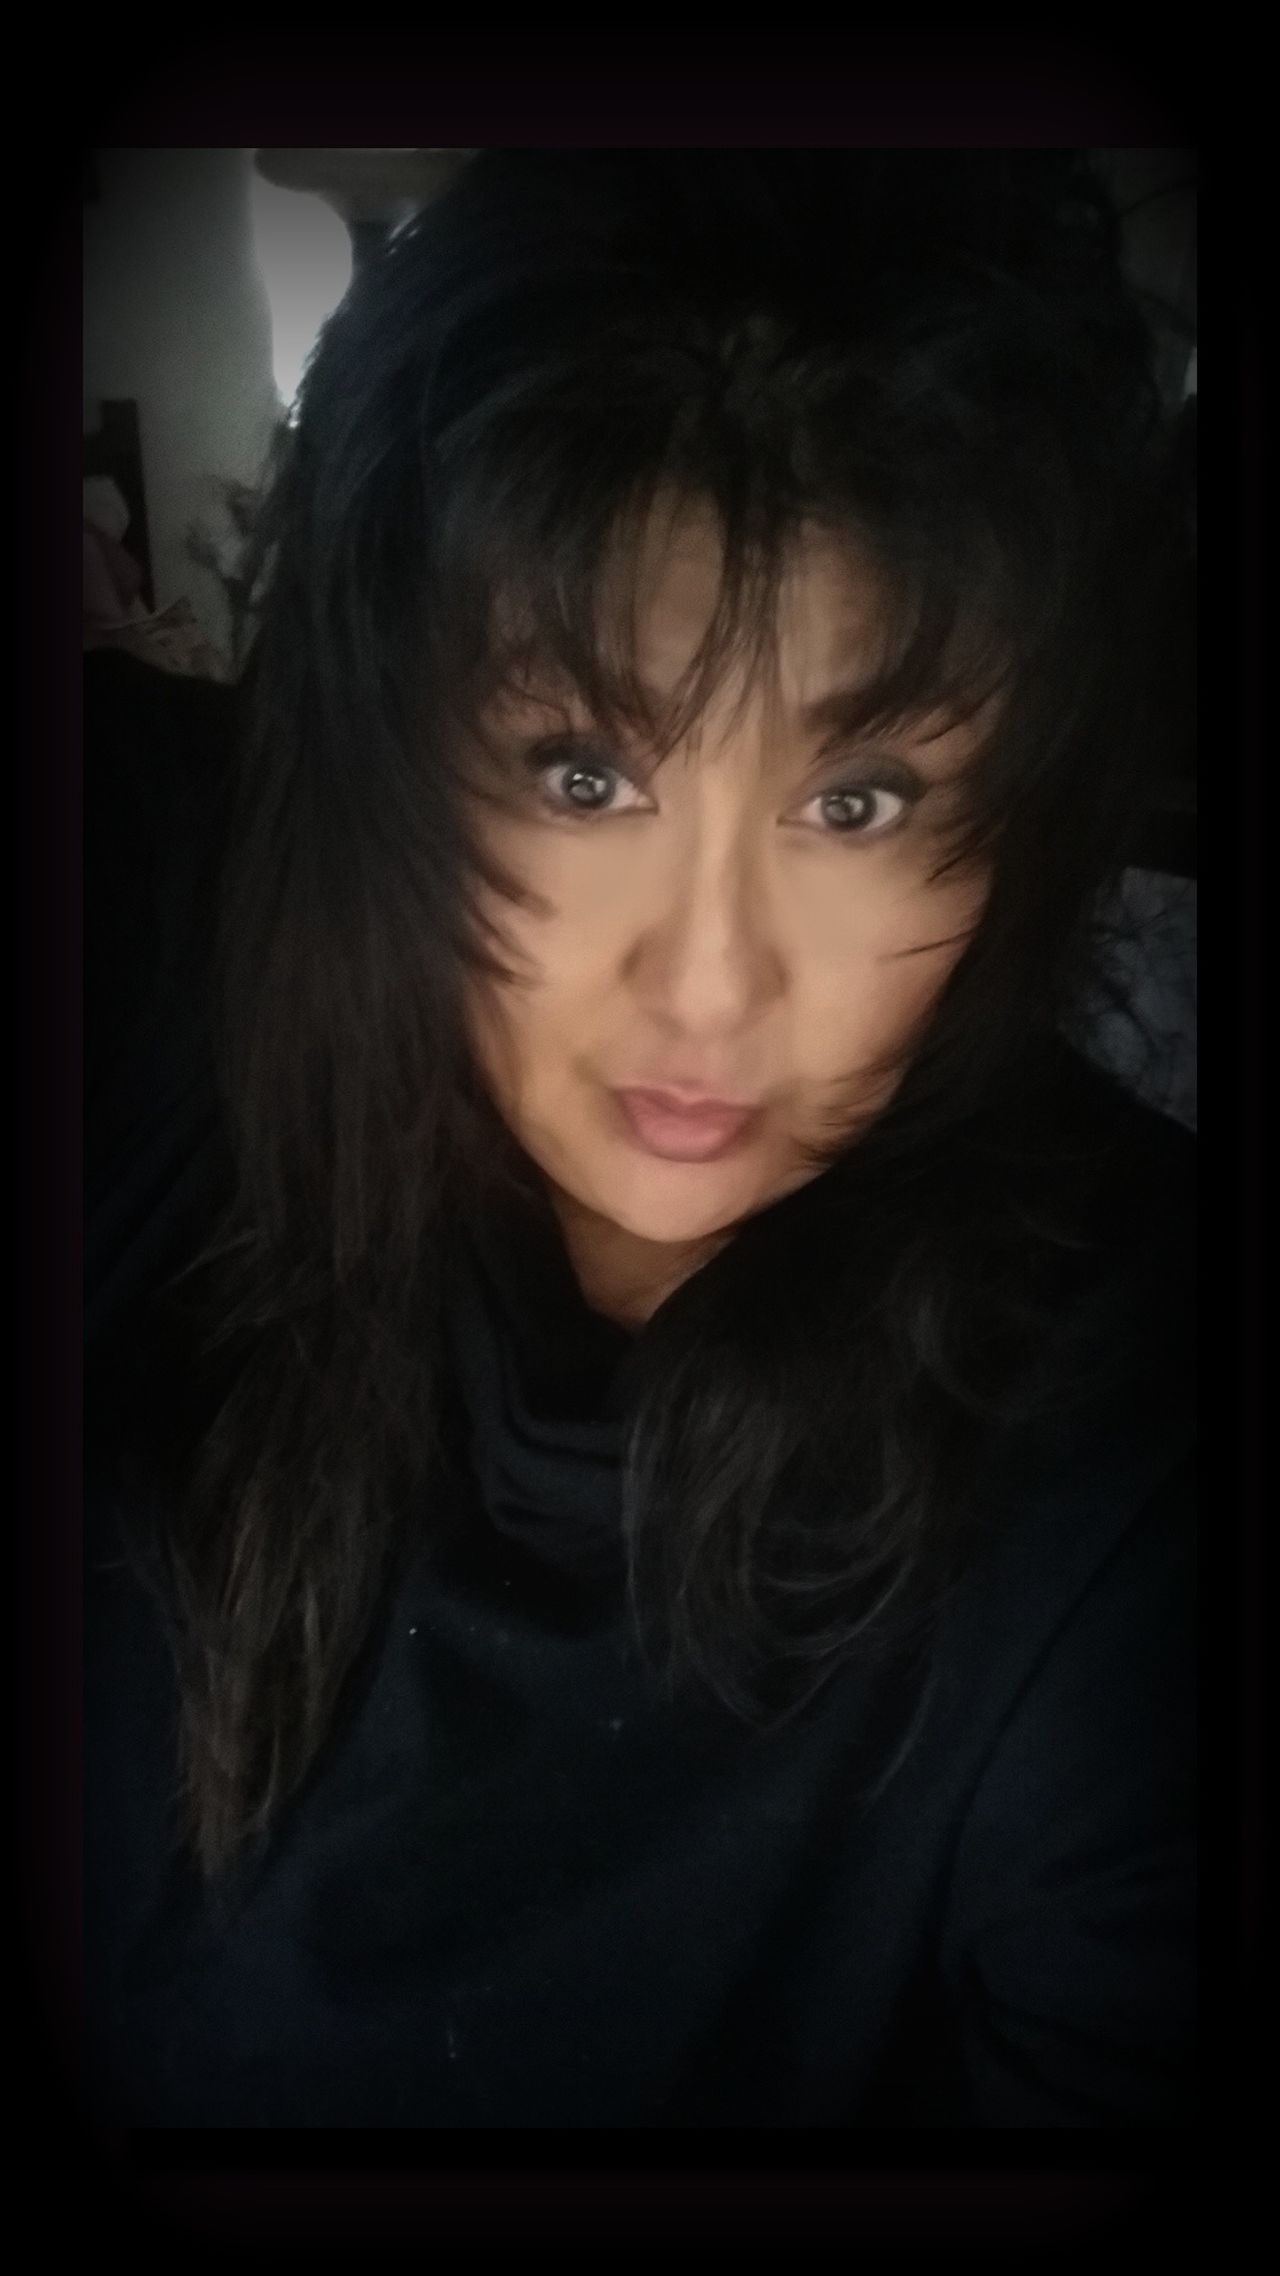 Here's Looking At You Kid Thats Me! Bay Area Life Nothing But Love Good Night World Front View Hairwizard Hairstylist Cosmetologist  Lifestyles Black Color Close-up Mad Love 4 You San Jose